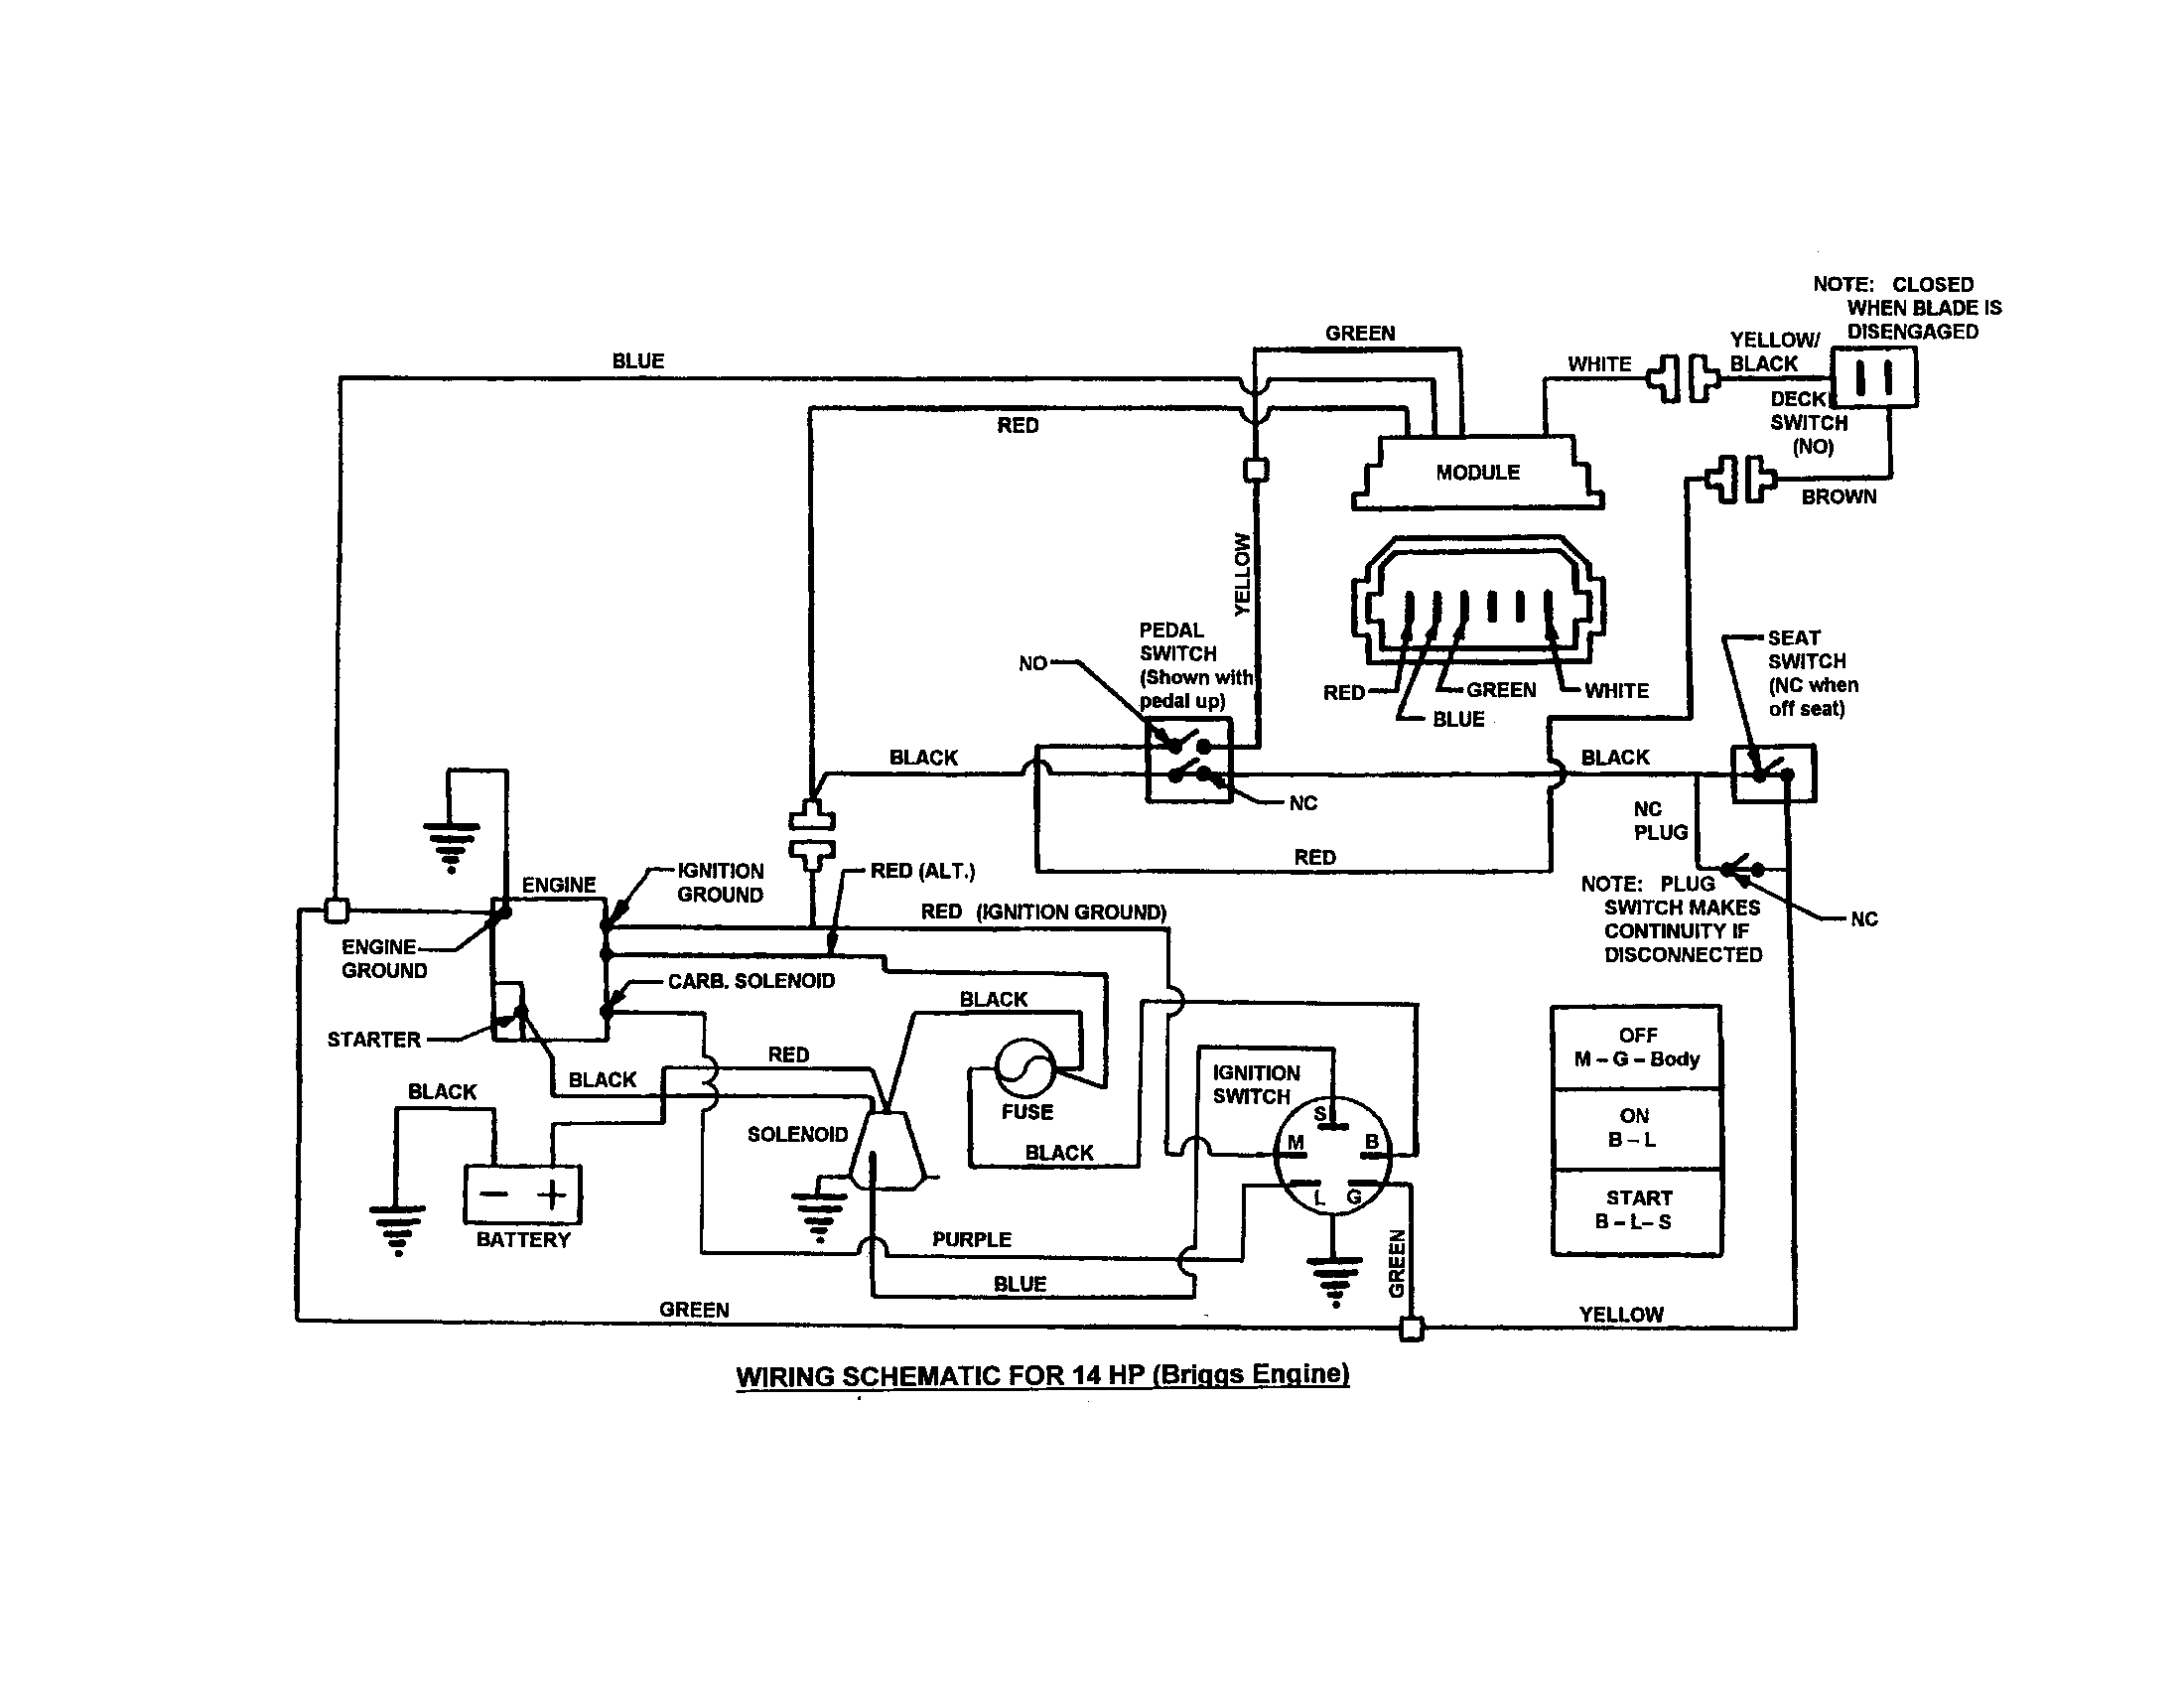 grasshopper 721d wiring diagram | wiring library cub cadet wiring diagrams wiring diagrams #9